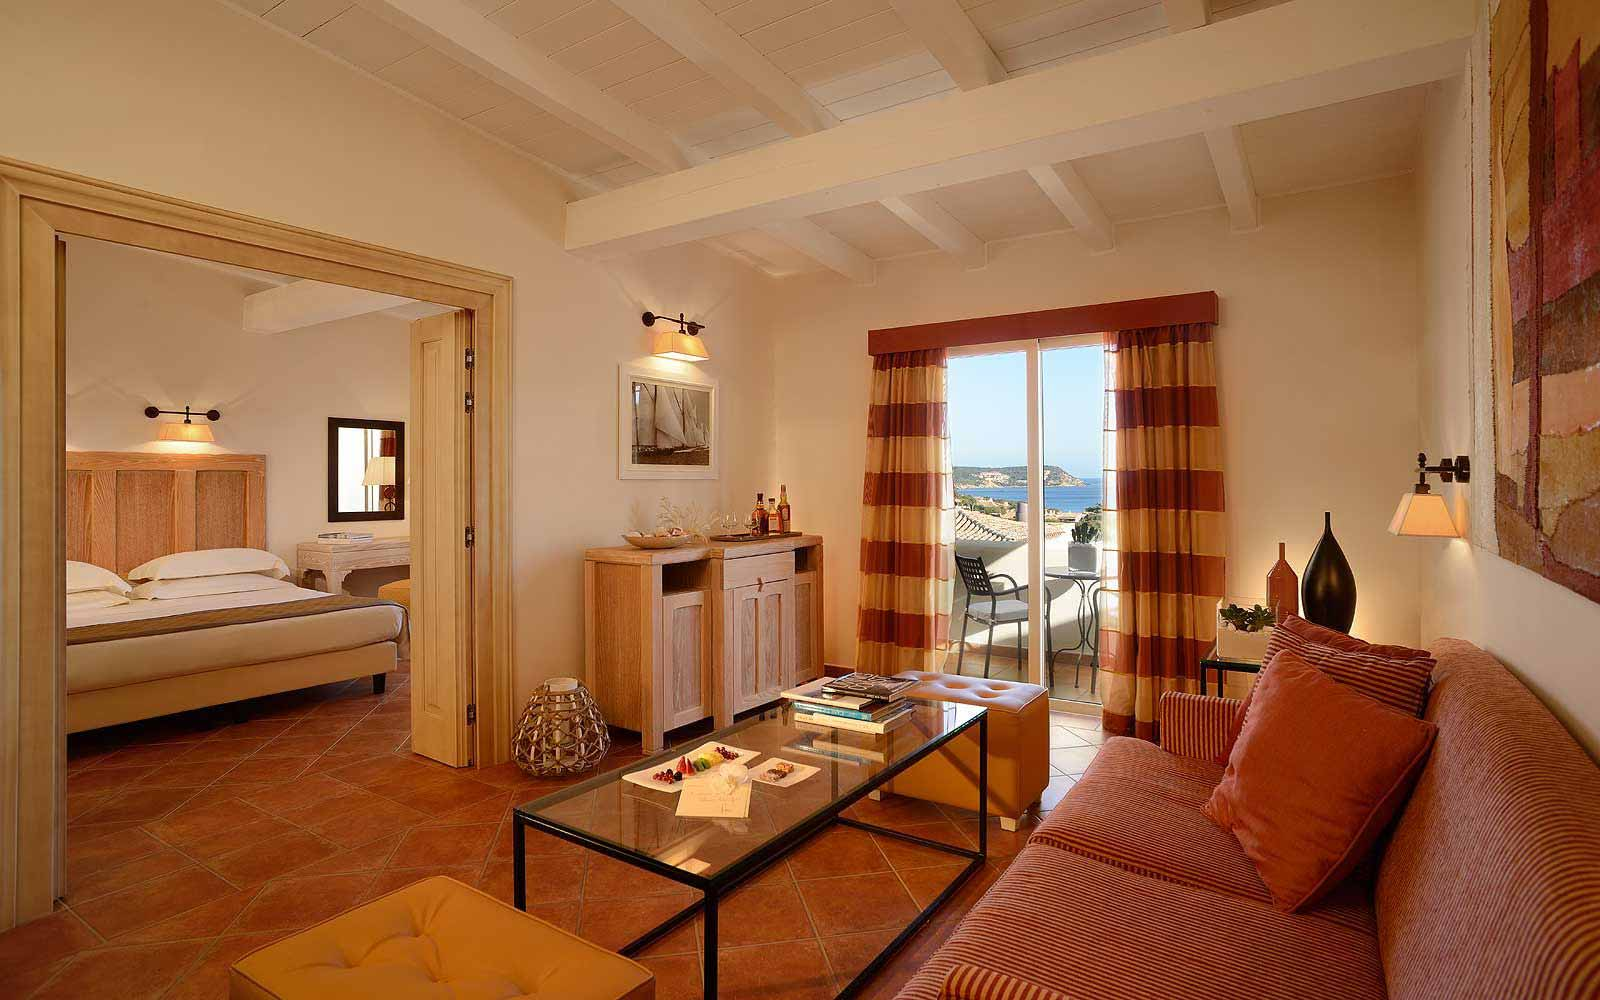 Executive Suite at Colonna Pevero Hotel